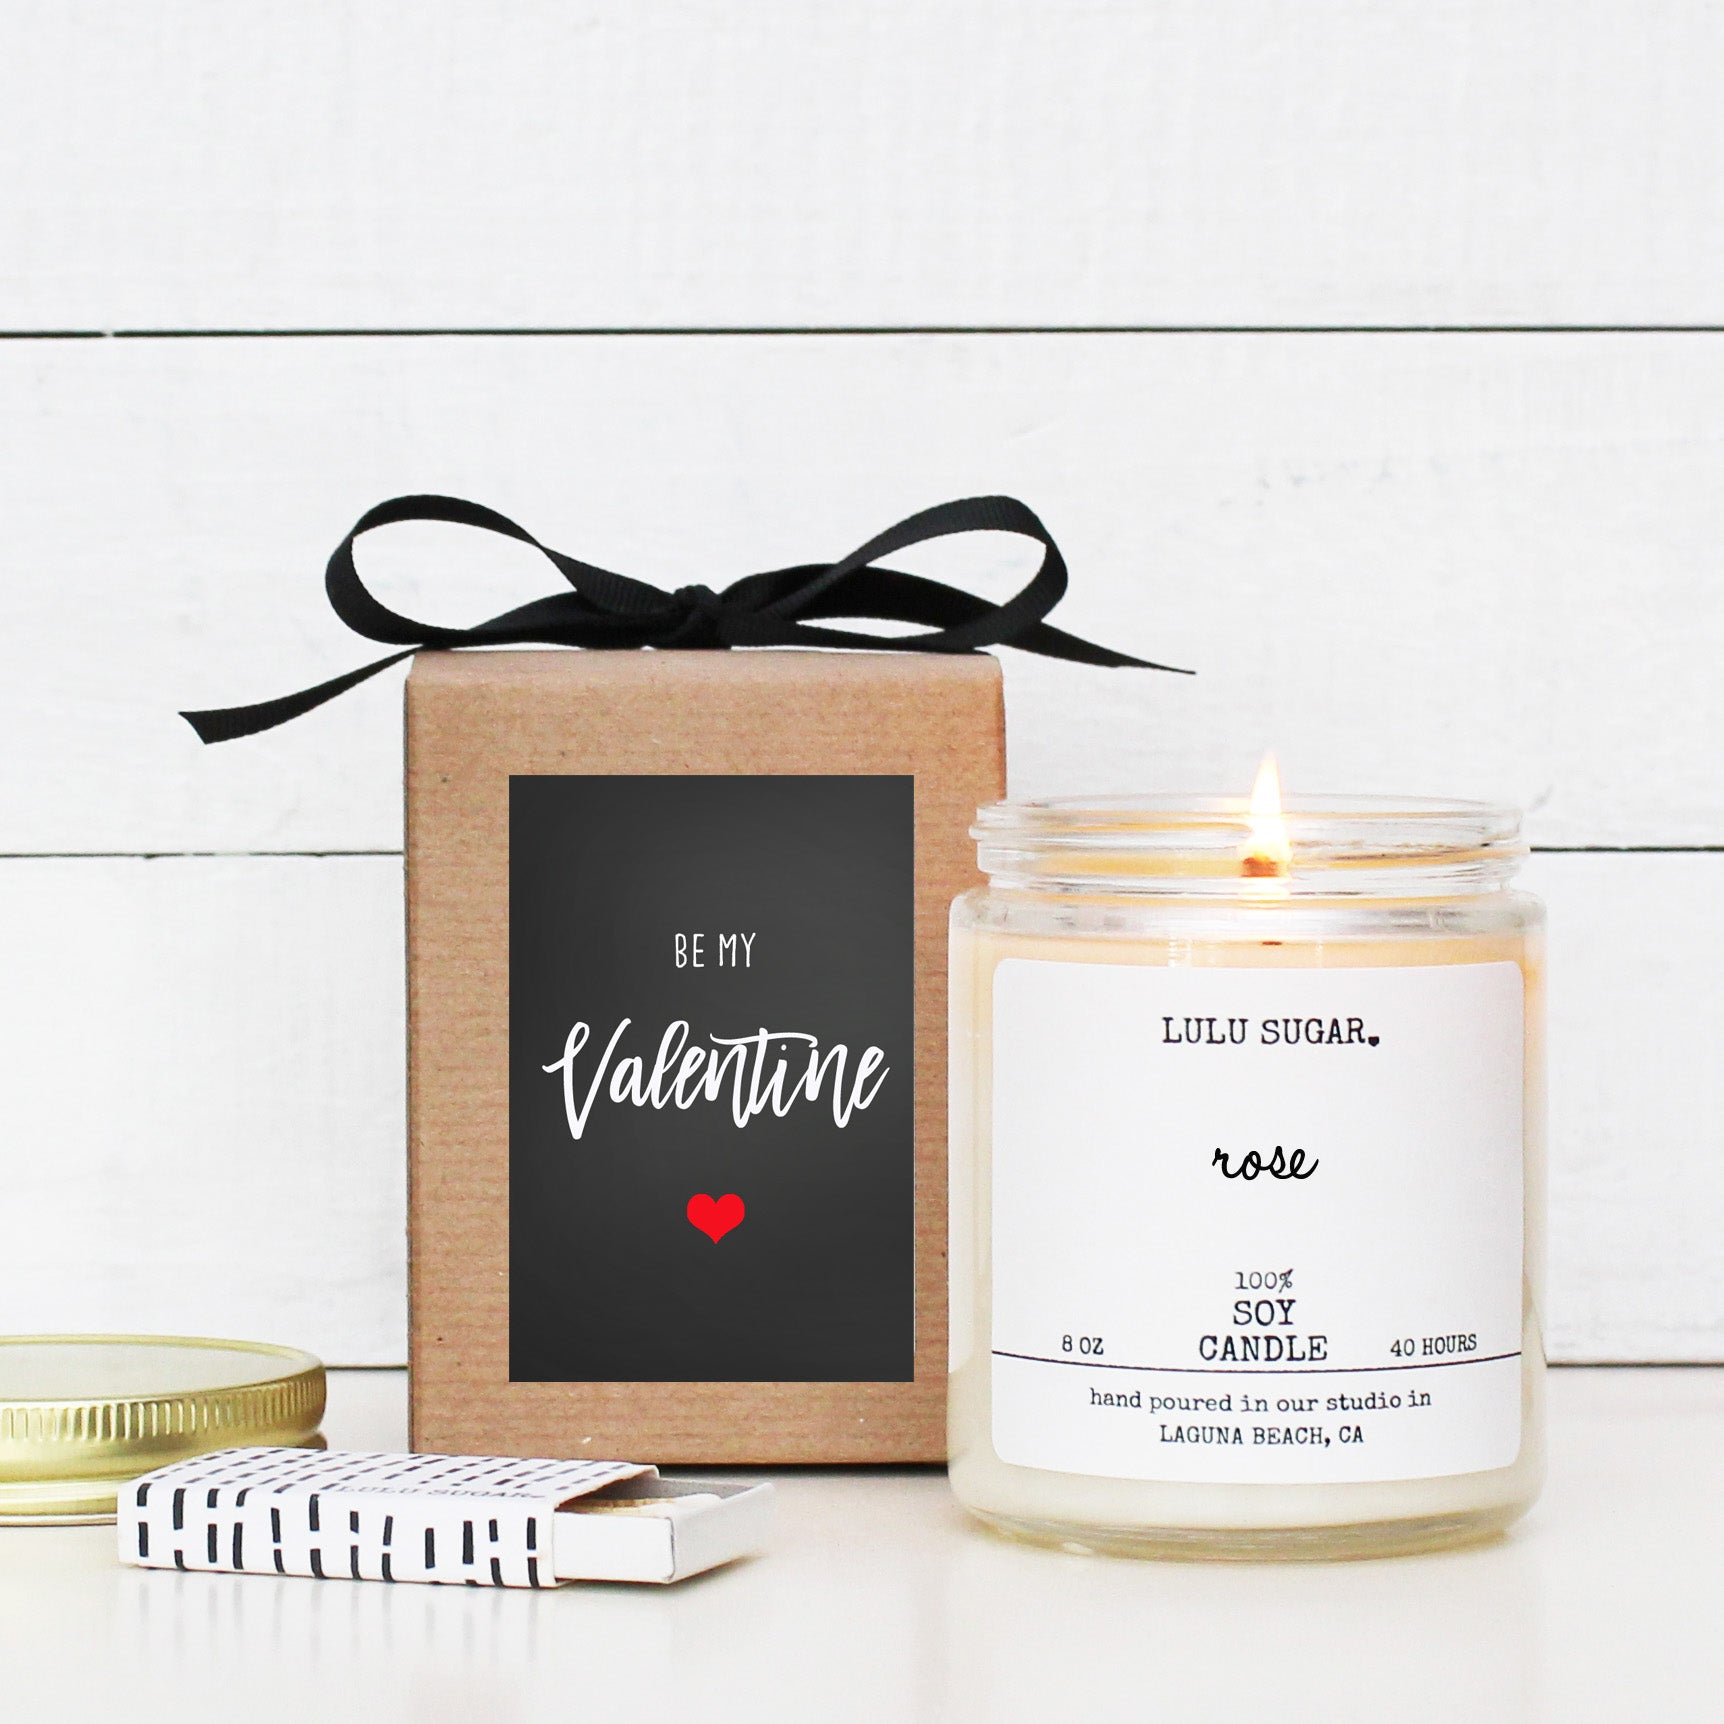 Be My Valentine - 8 oz Soy Candle